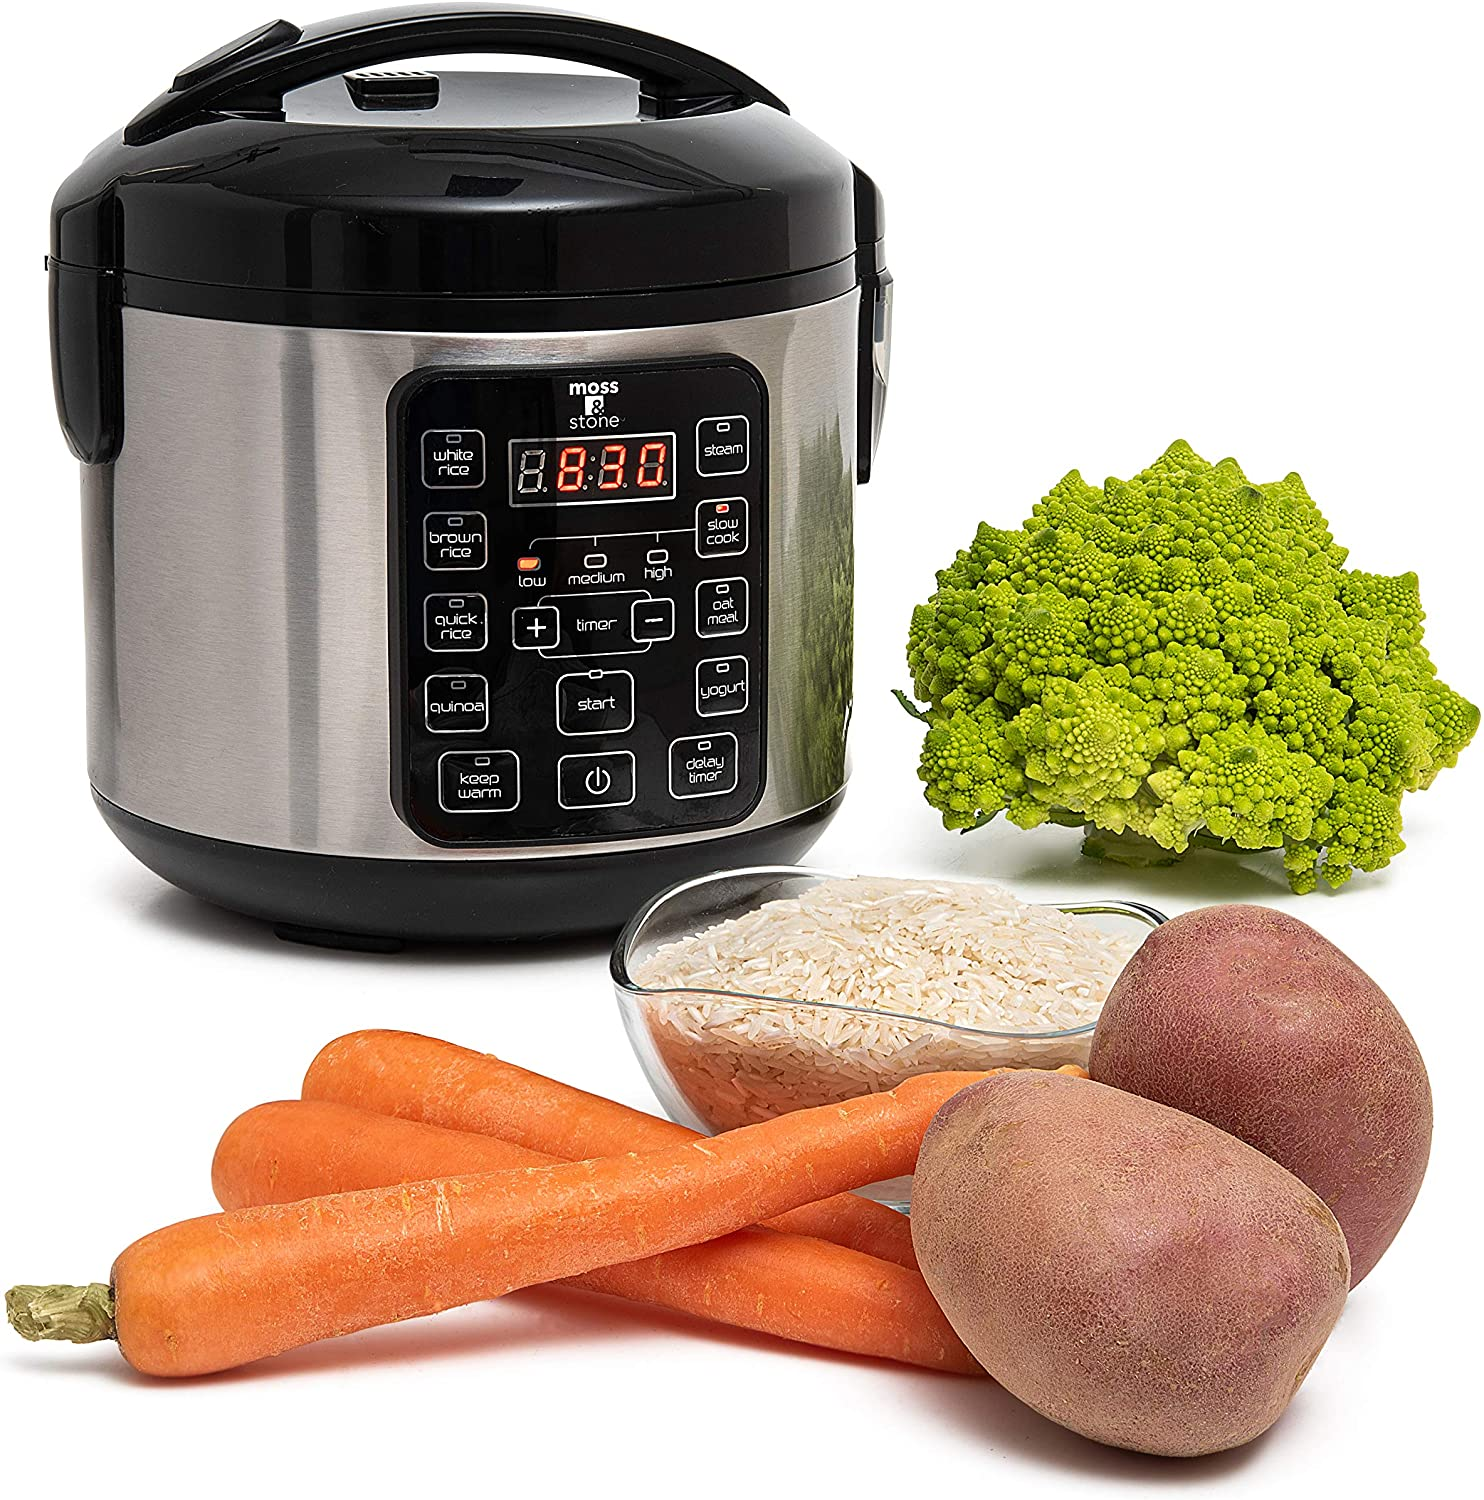 Electric Multicooker Digital Rice Cooker 4-8 Cup/Brown And White Rice/Food Steamer/Slow Cooker By Moss & Stone.